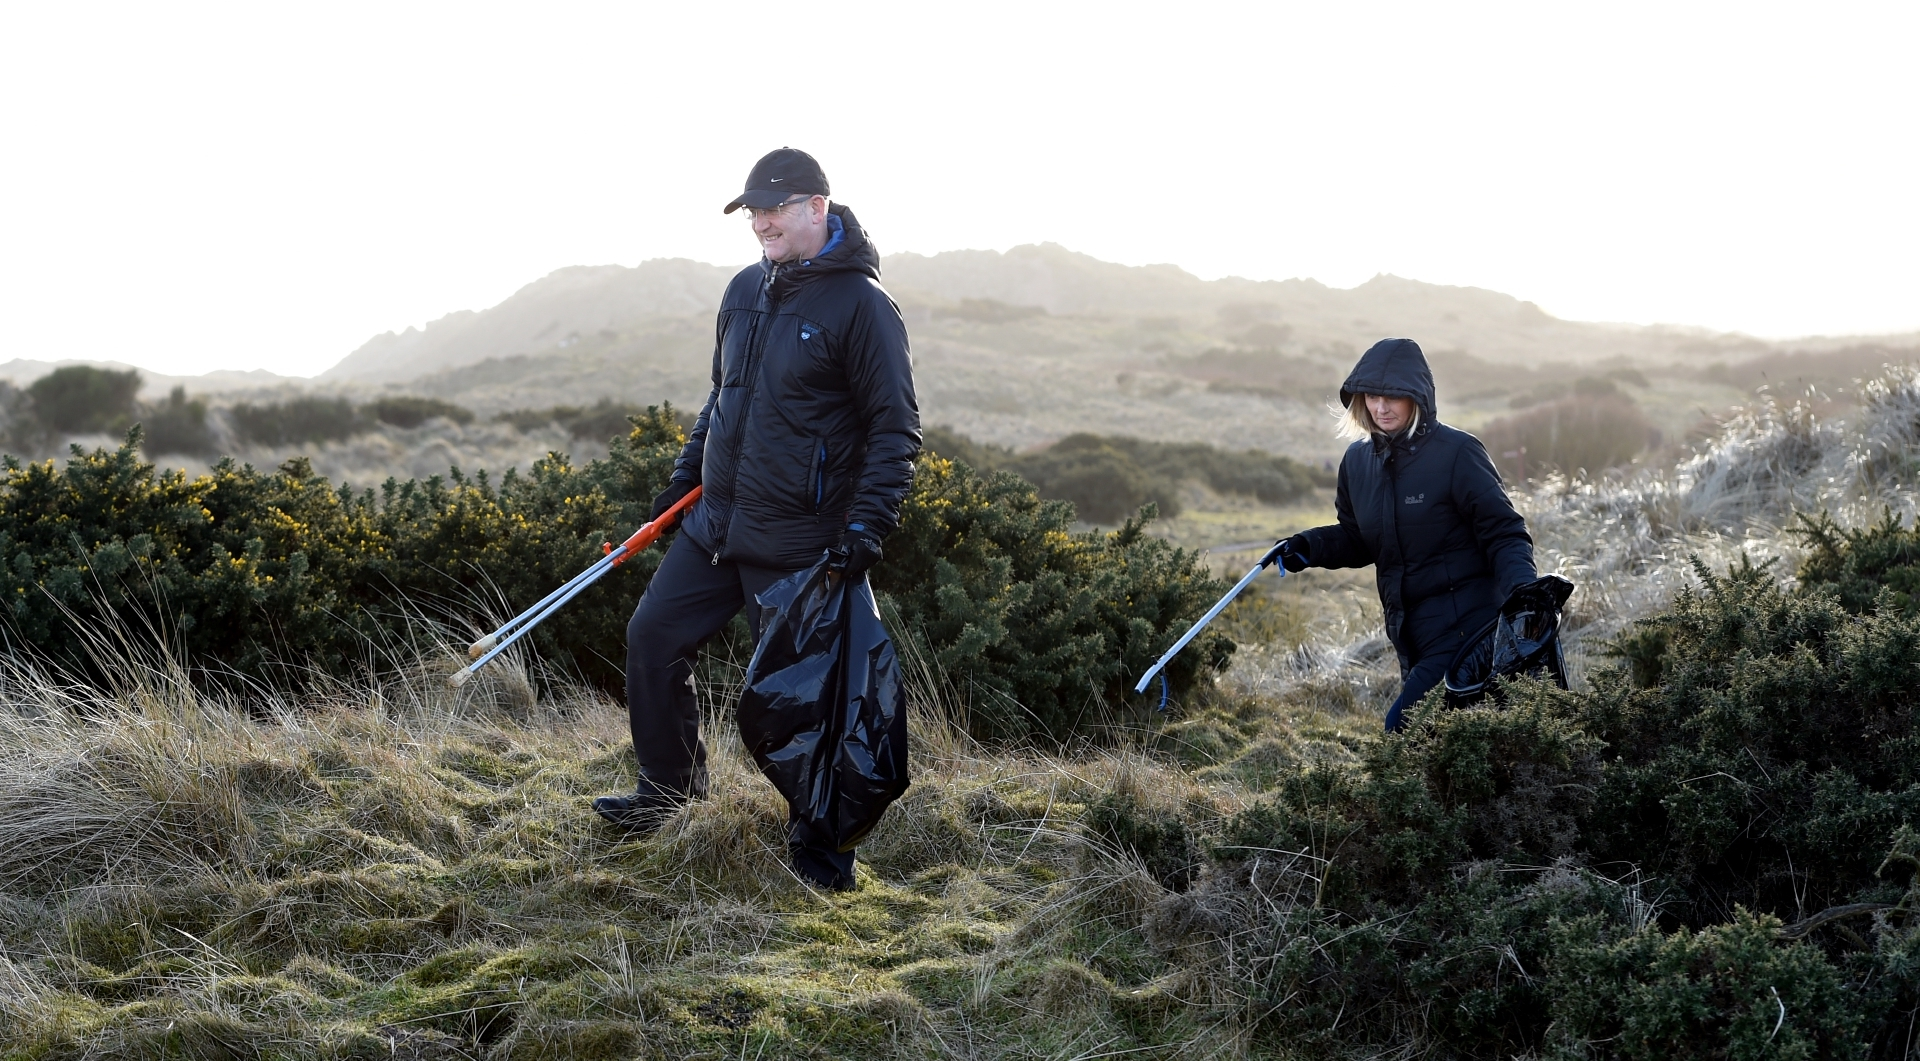 Volunteers are needed for a clean-up at the Balmedie Country Park beach area